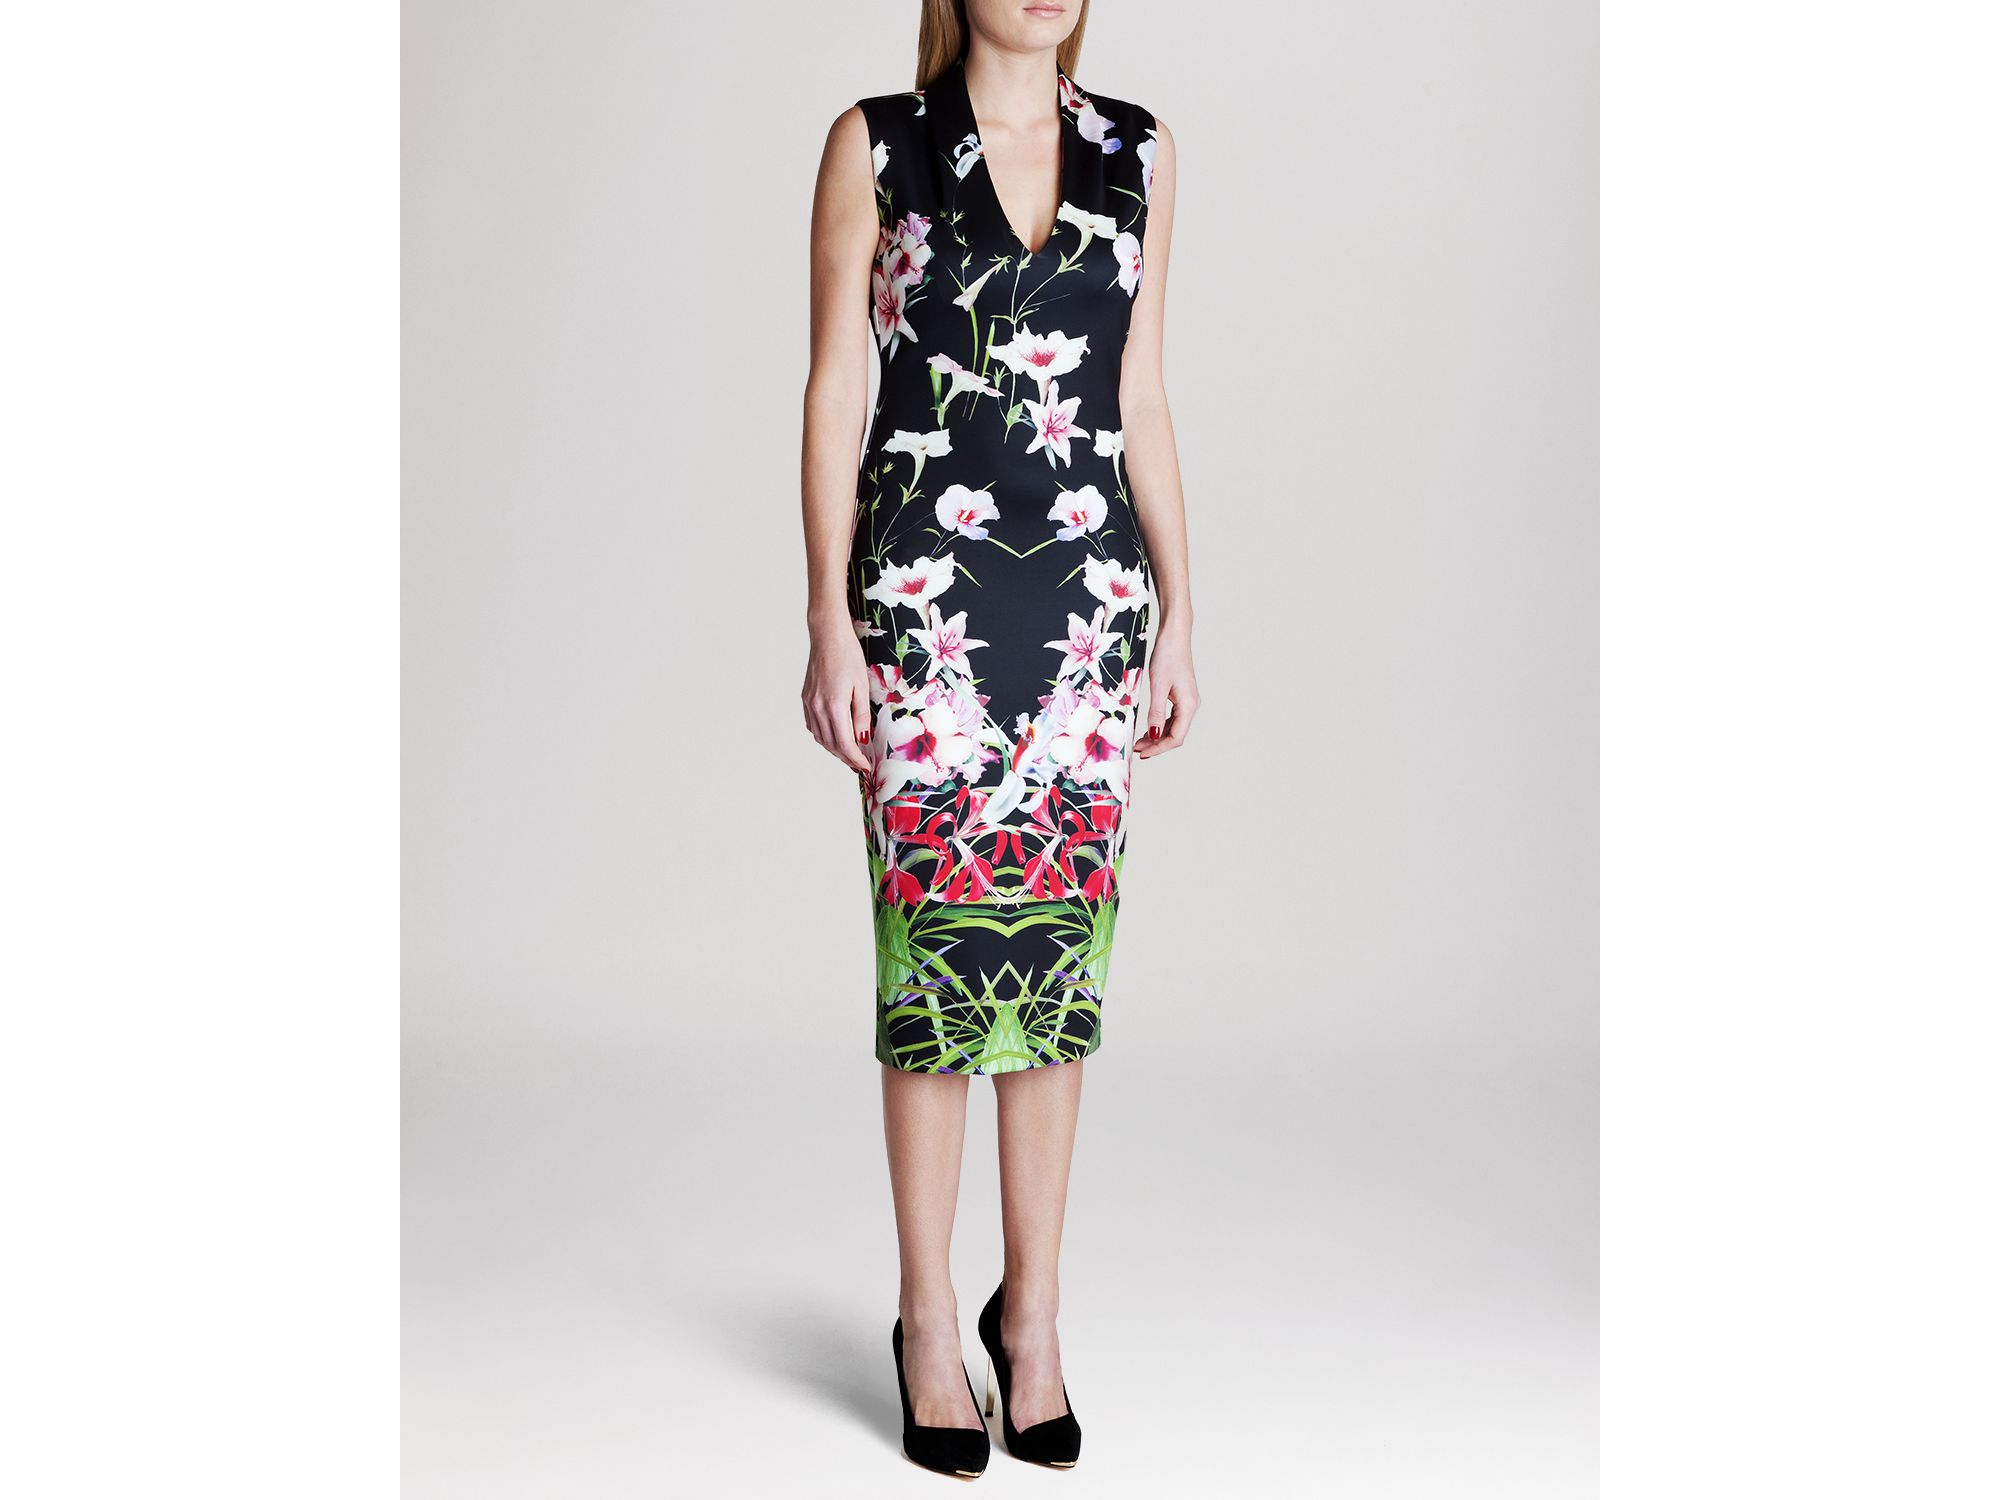 505e1116d Lyst - Ted Baker Dress - Jalita Mirrored Tropics in Black